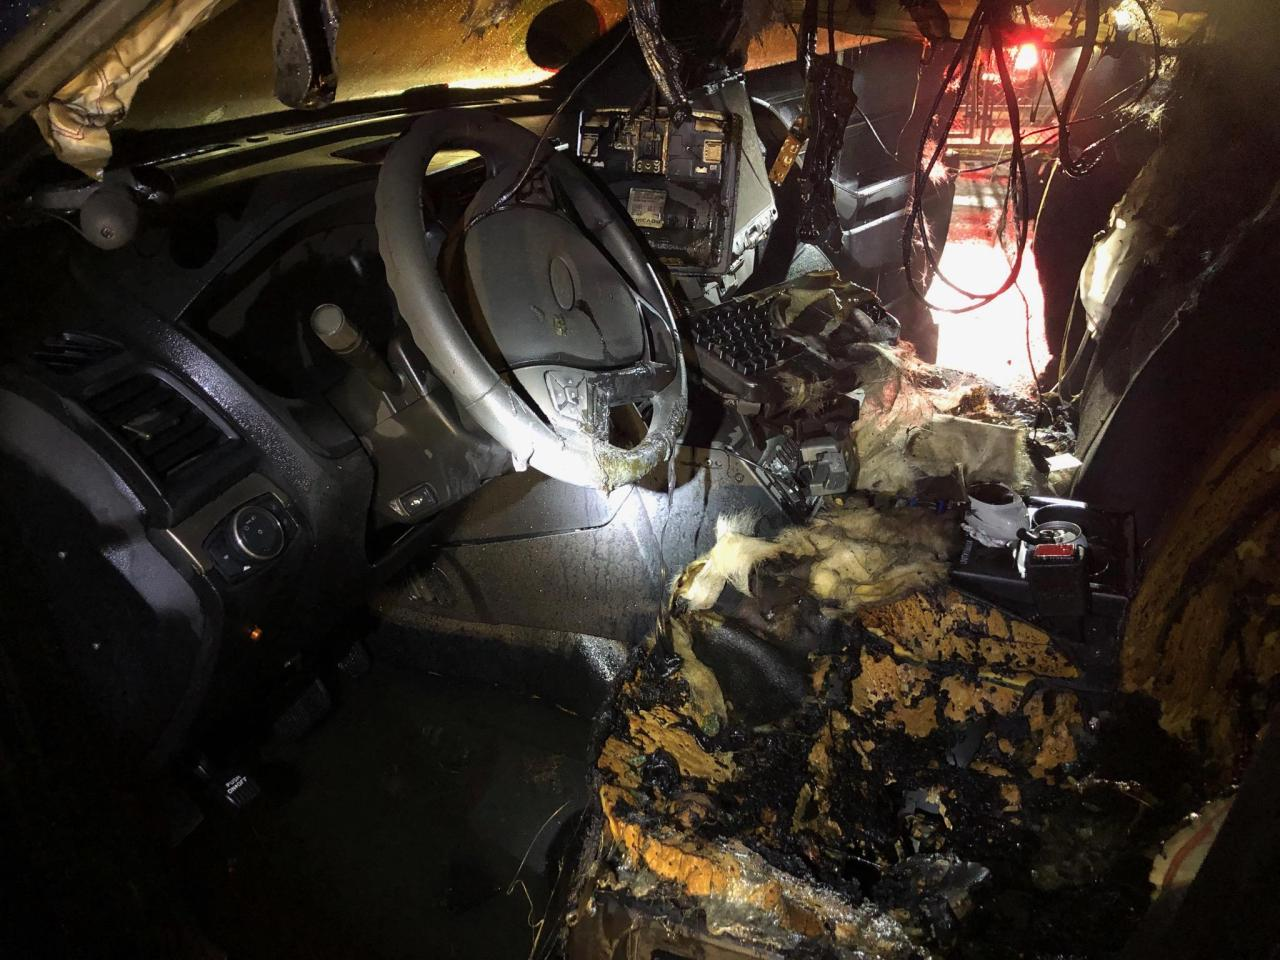 PPB: Arson suspected after empty police car burns